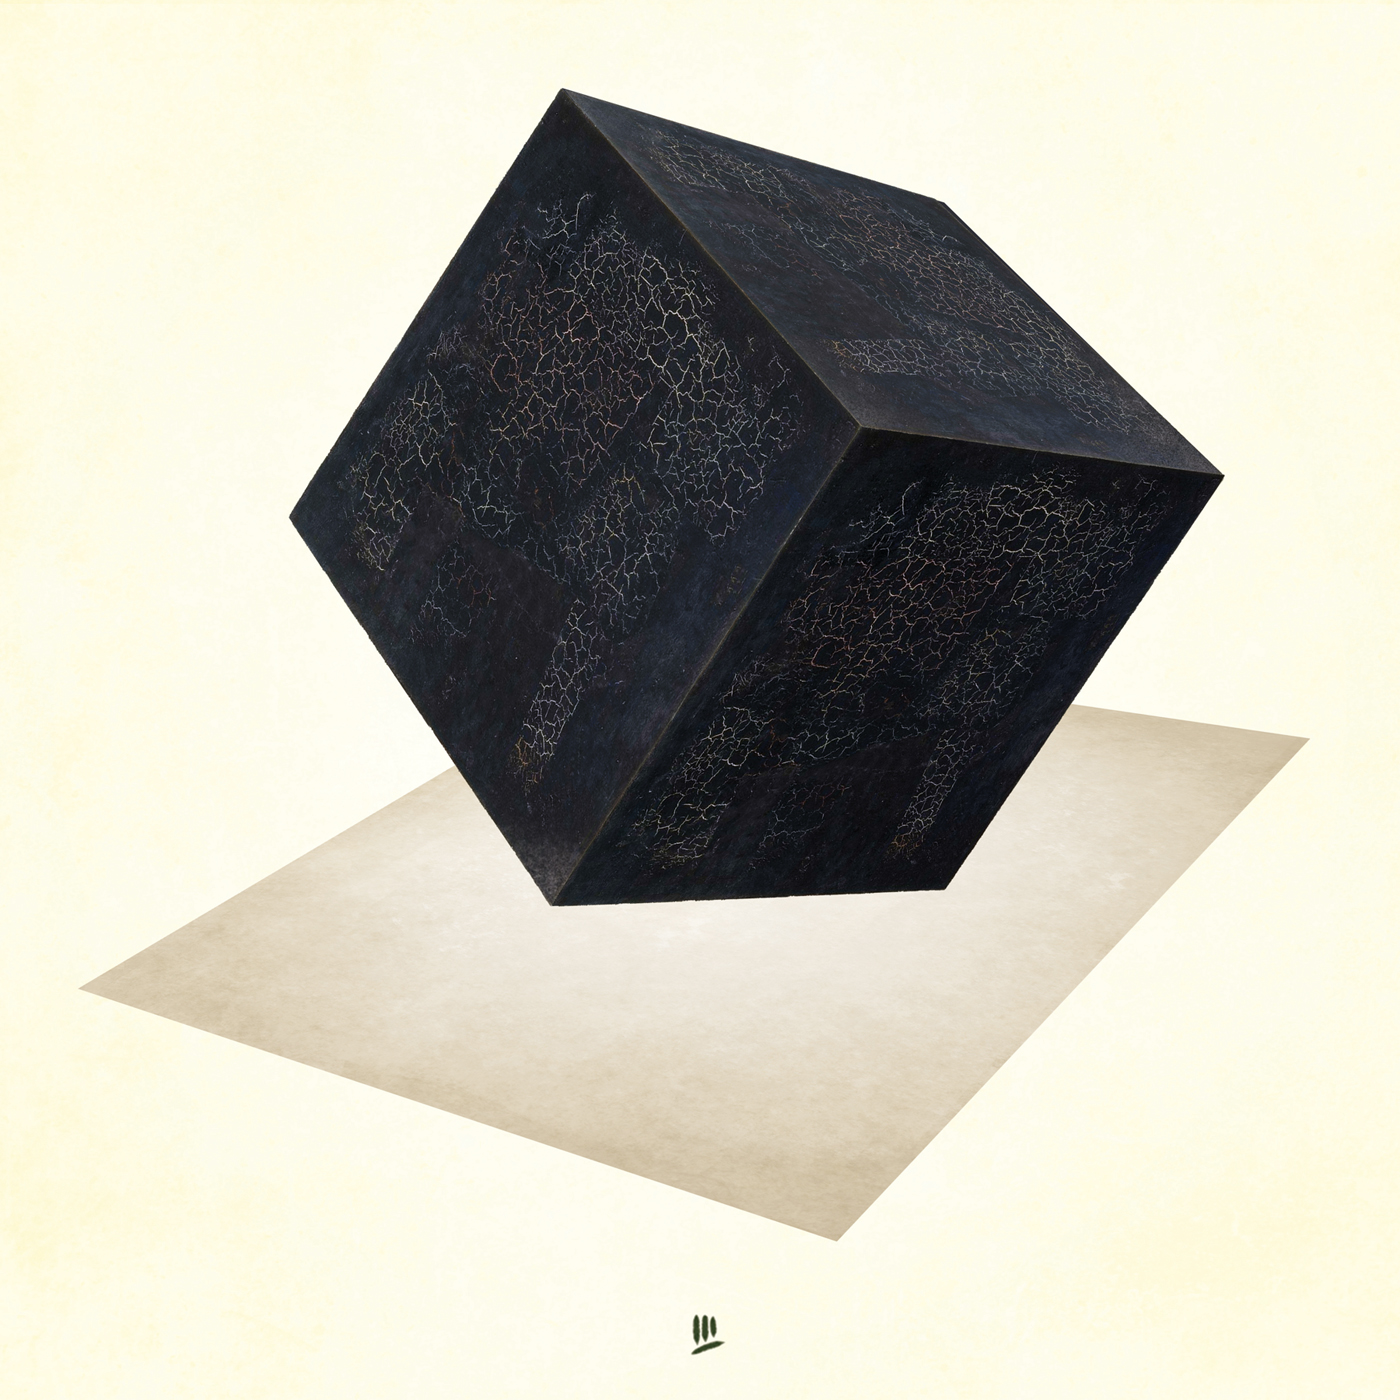 Black square over white background by Luis Miguel Galache 2019